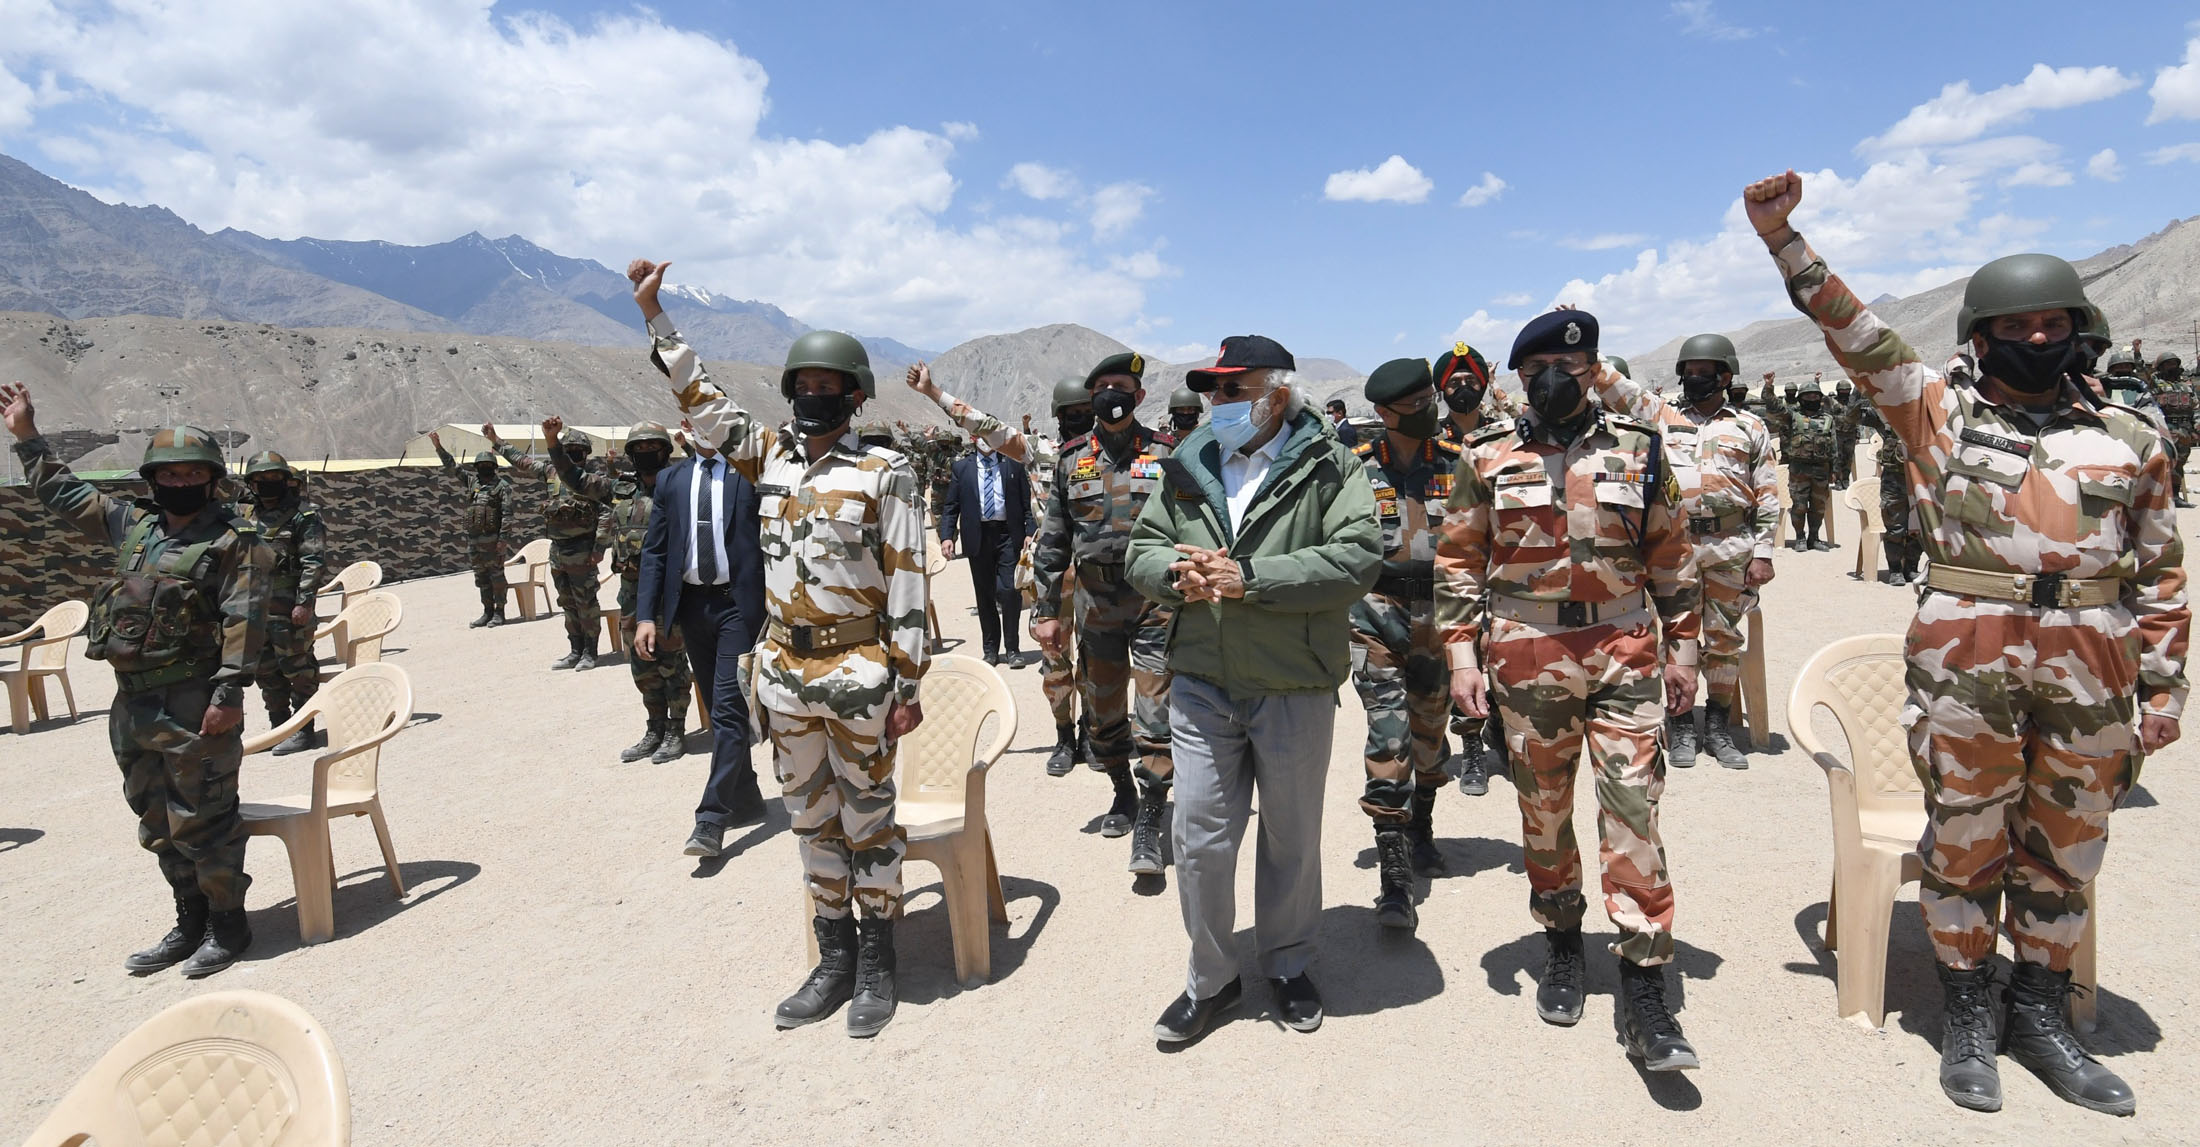 Prime Minister Narendra Modi visits Nimu in Ladakh to interact with Indian troops